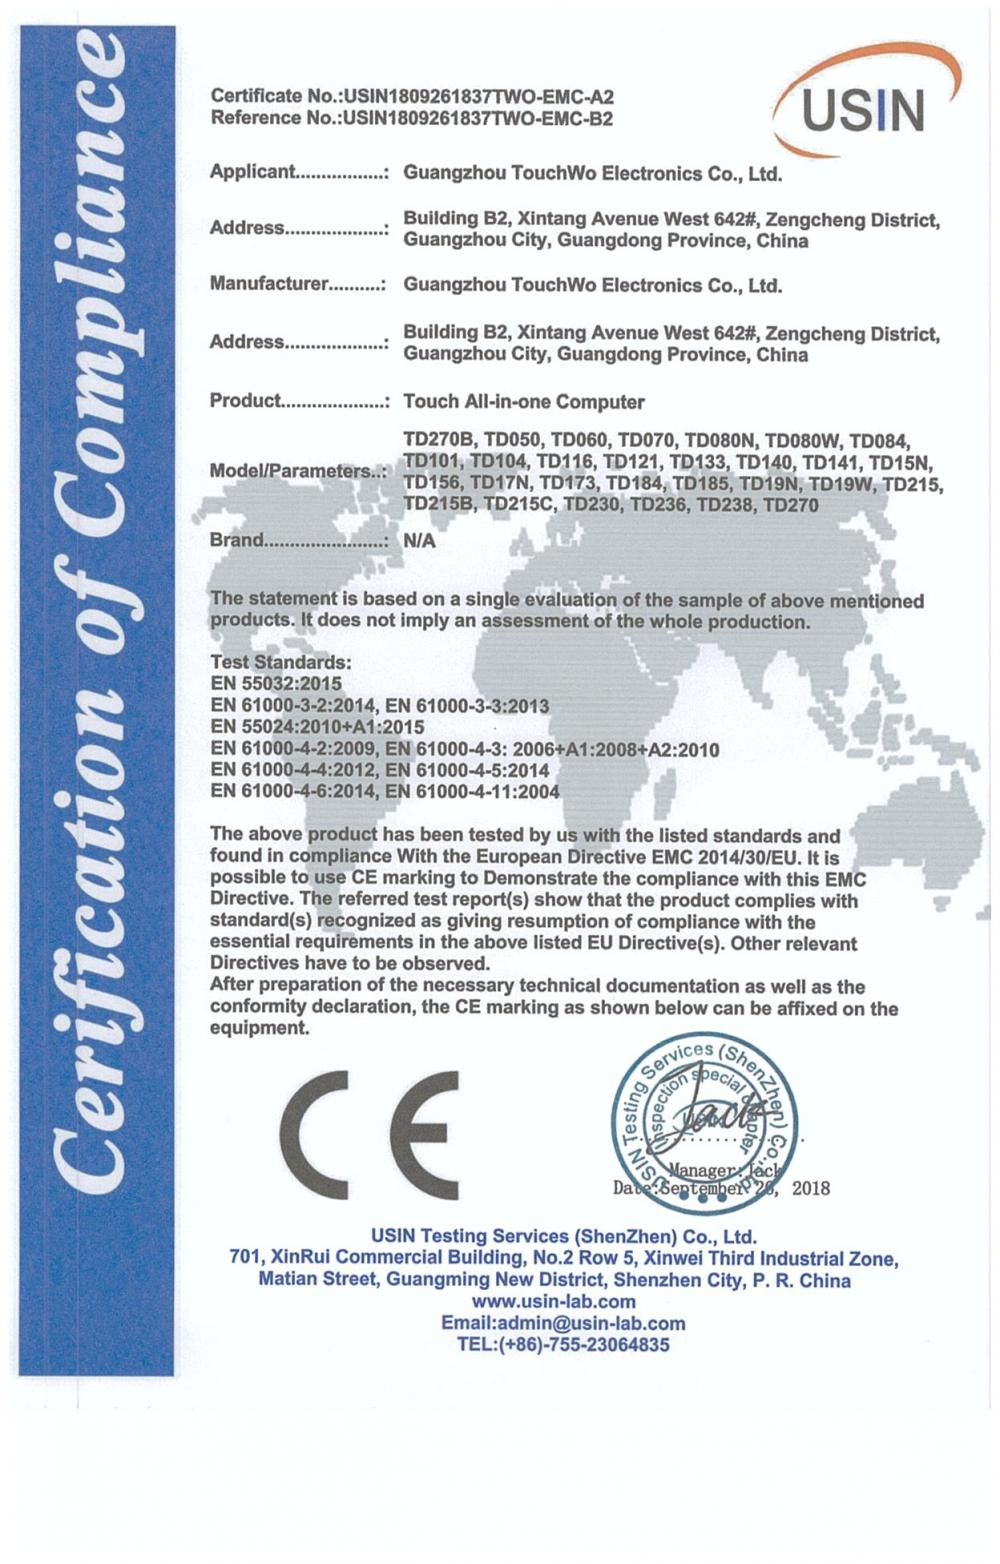 Certification of compliance